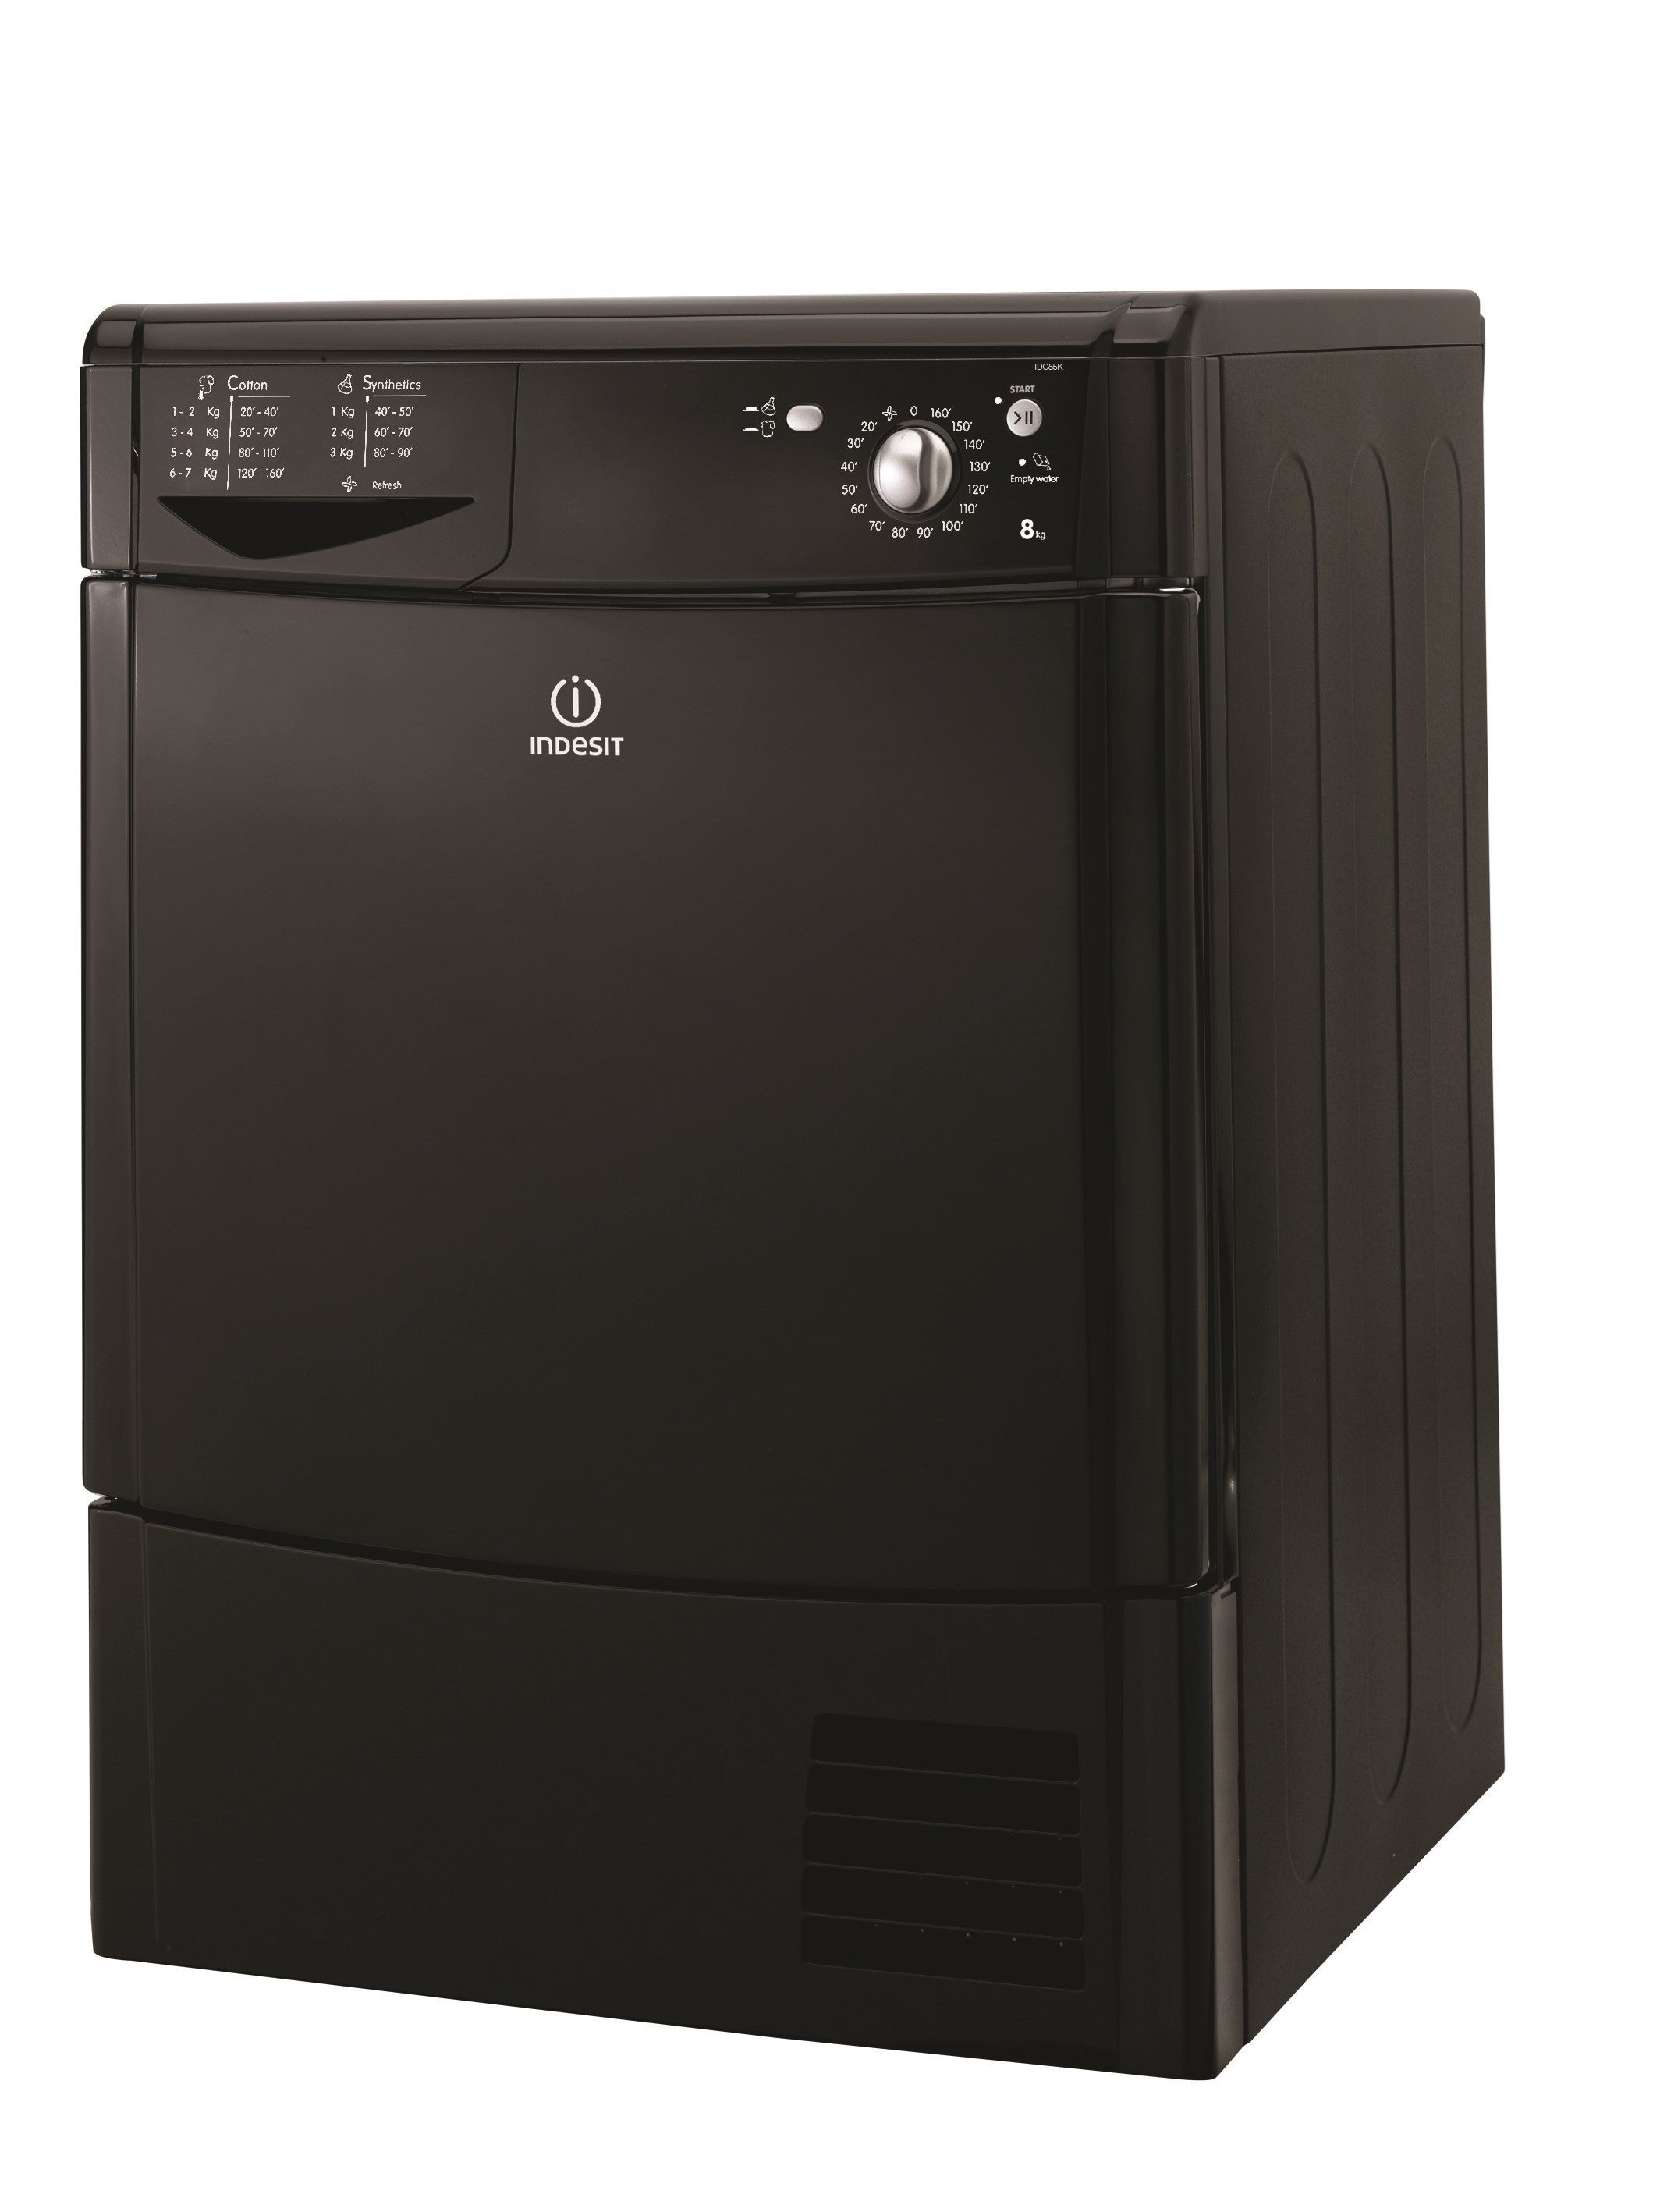 Indesit  Black Tumble Dryer - IDC85K